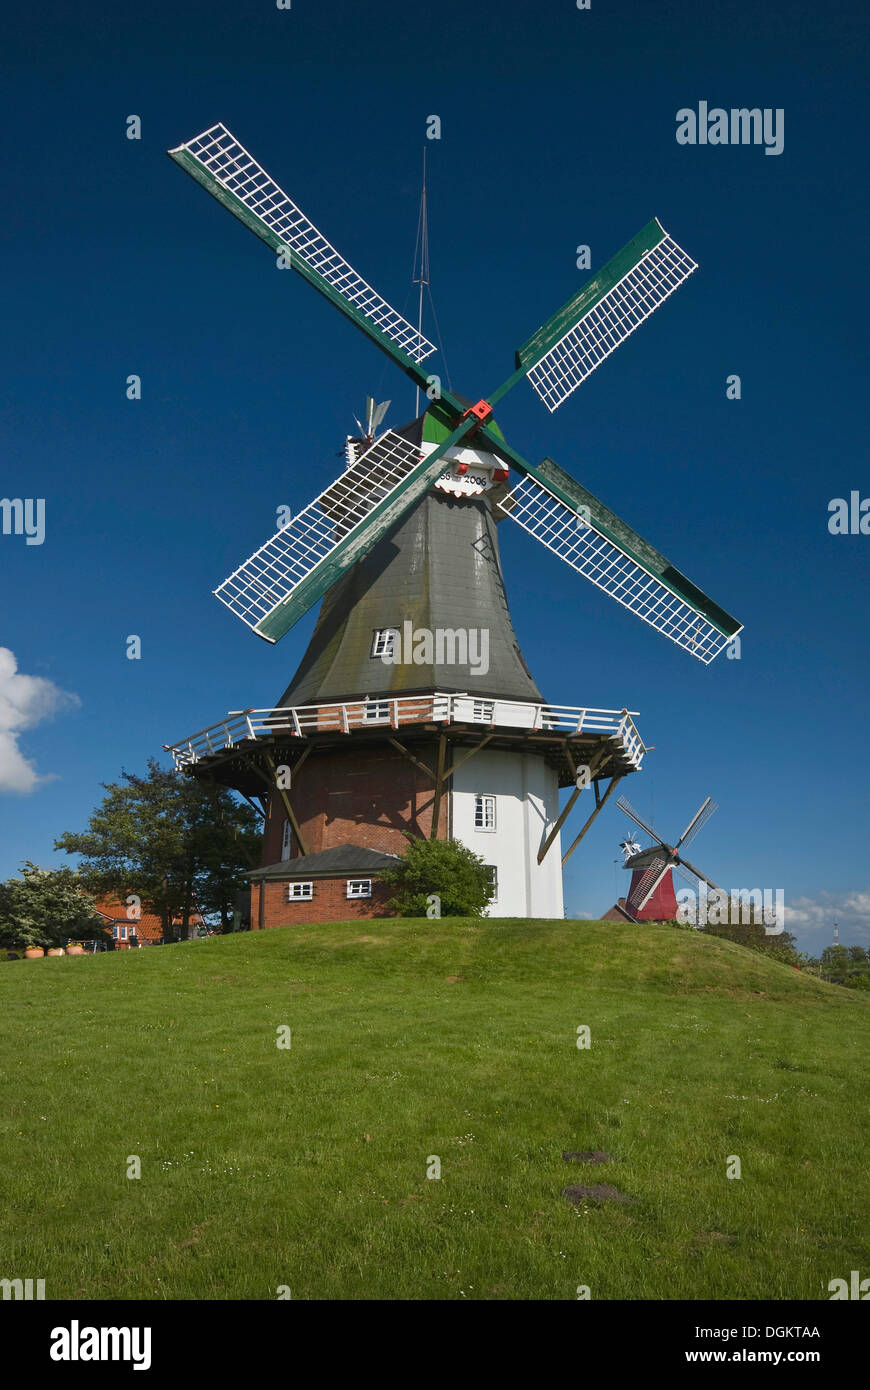 Twin windmills of Greetsiel, Dutch gallery windmill, western windmill at front, tea rooms, Krummhoern, landmark of Greetsiel - Stock Image